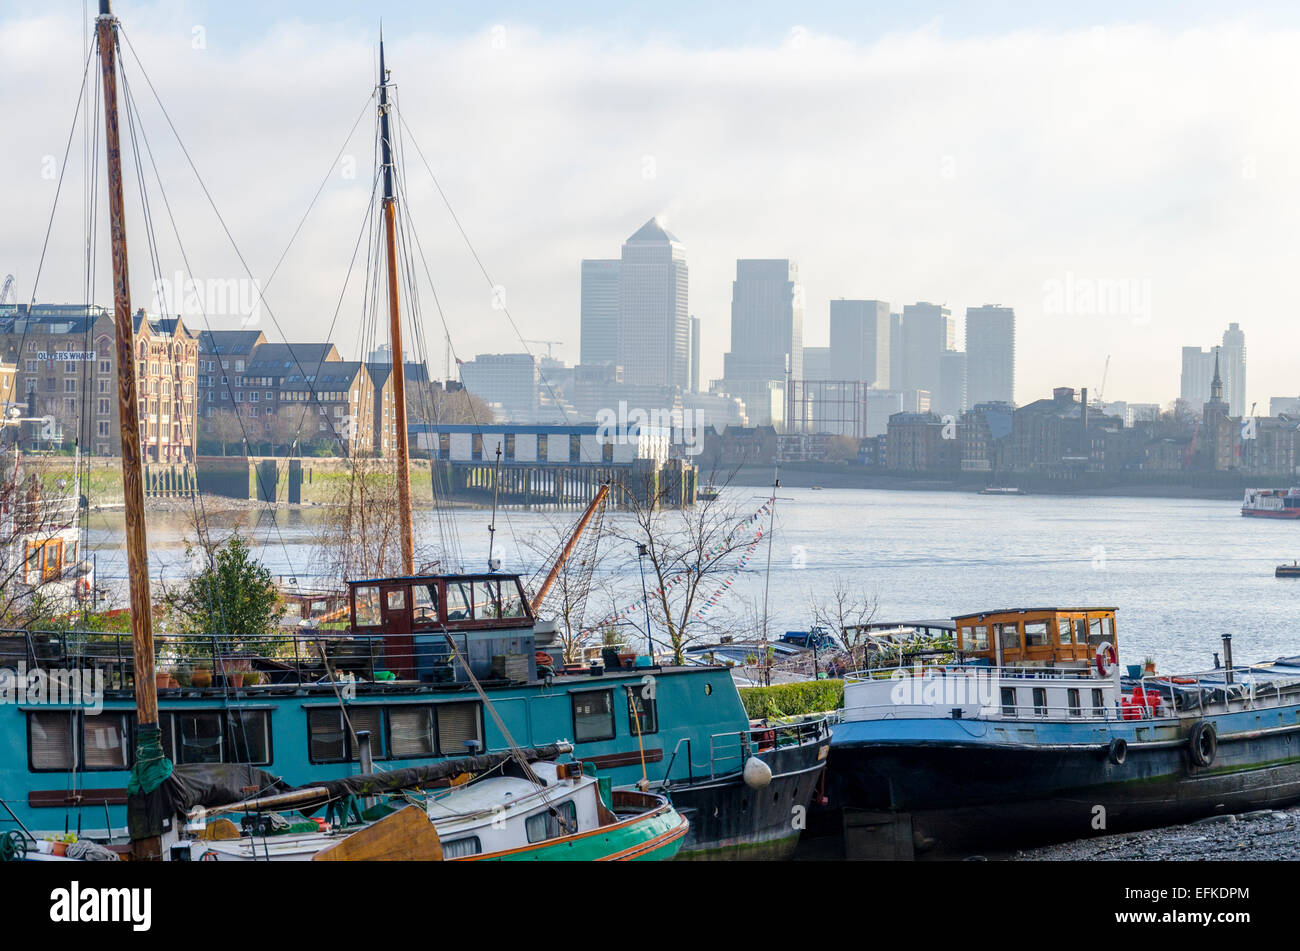 Downings Roads Moorings (Garden Barge Square / Floating Barge Gardens), river Thames, London, UK - Stock Image